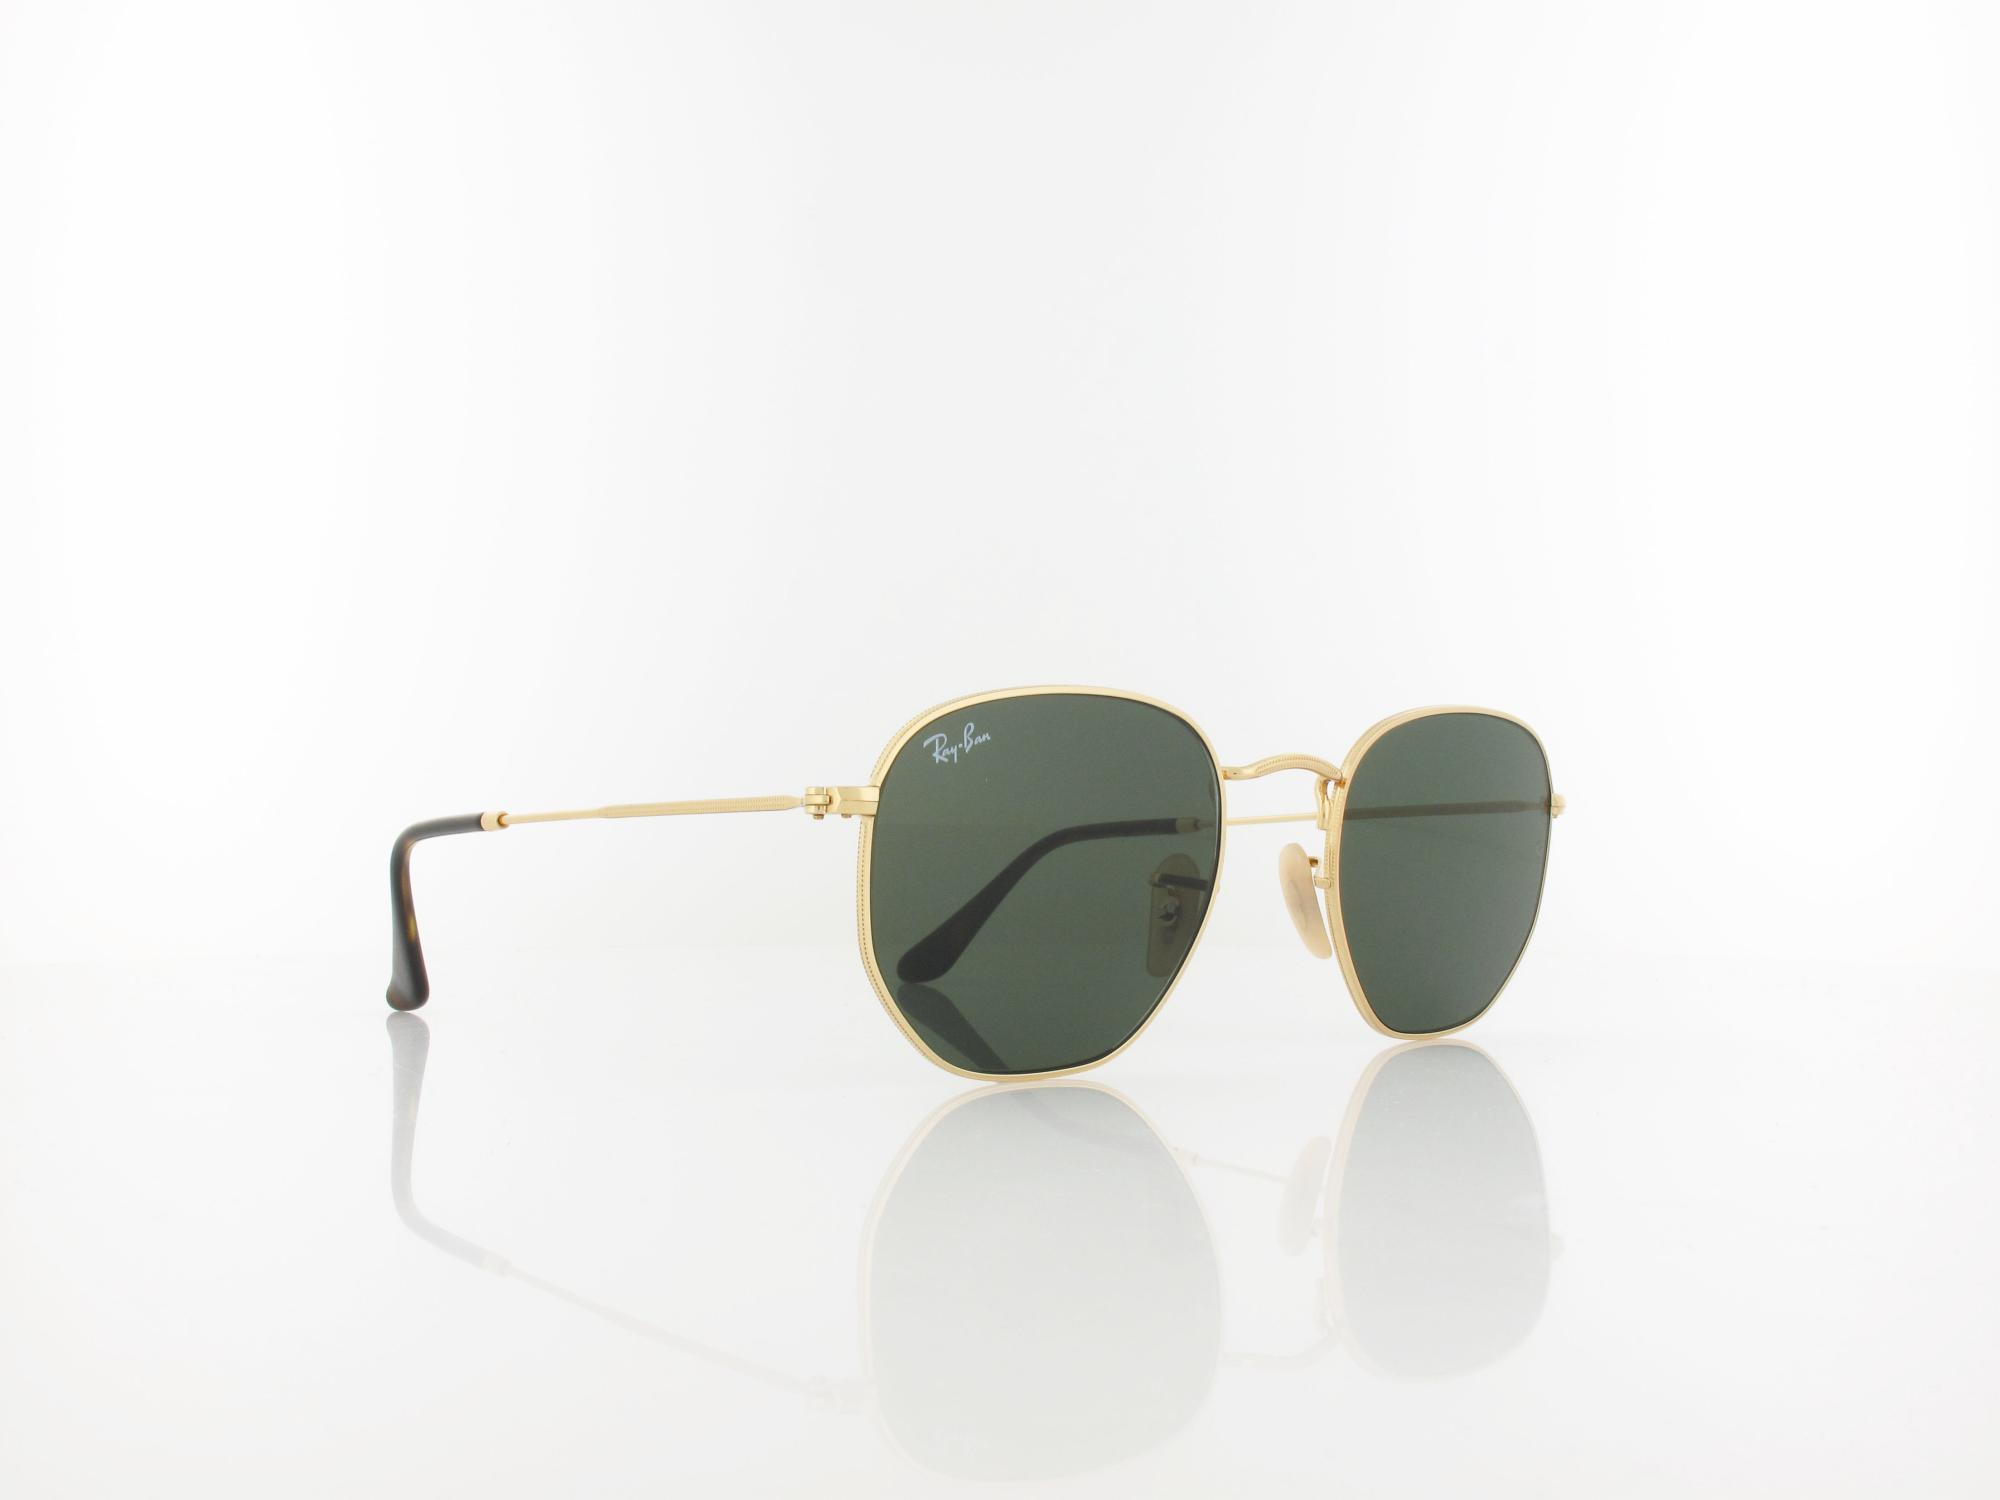 Ray Ban | RB3548N 001 51 | gold / crystal green